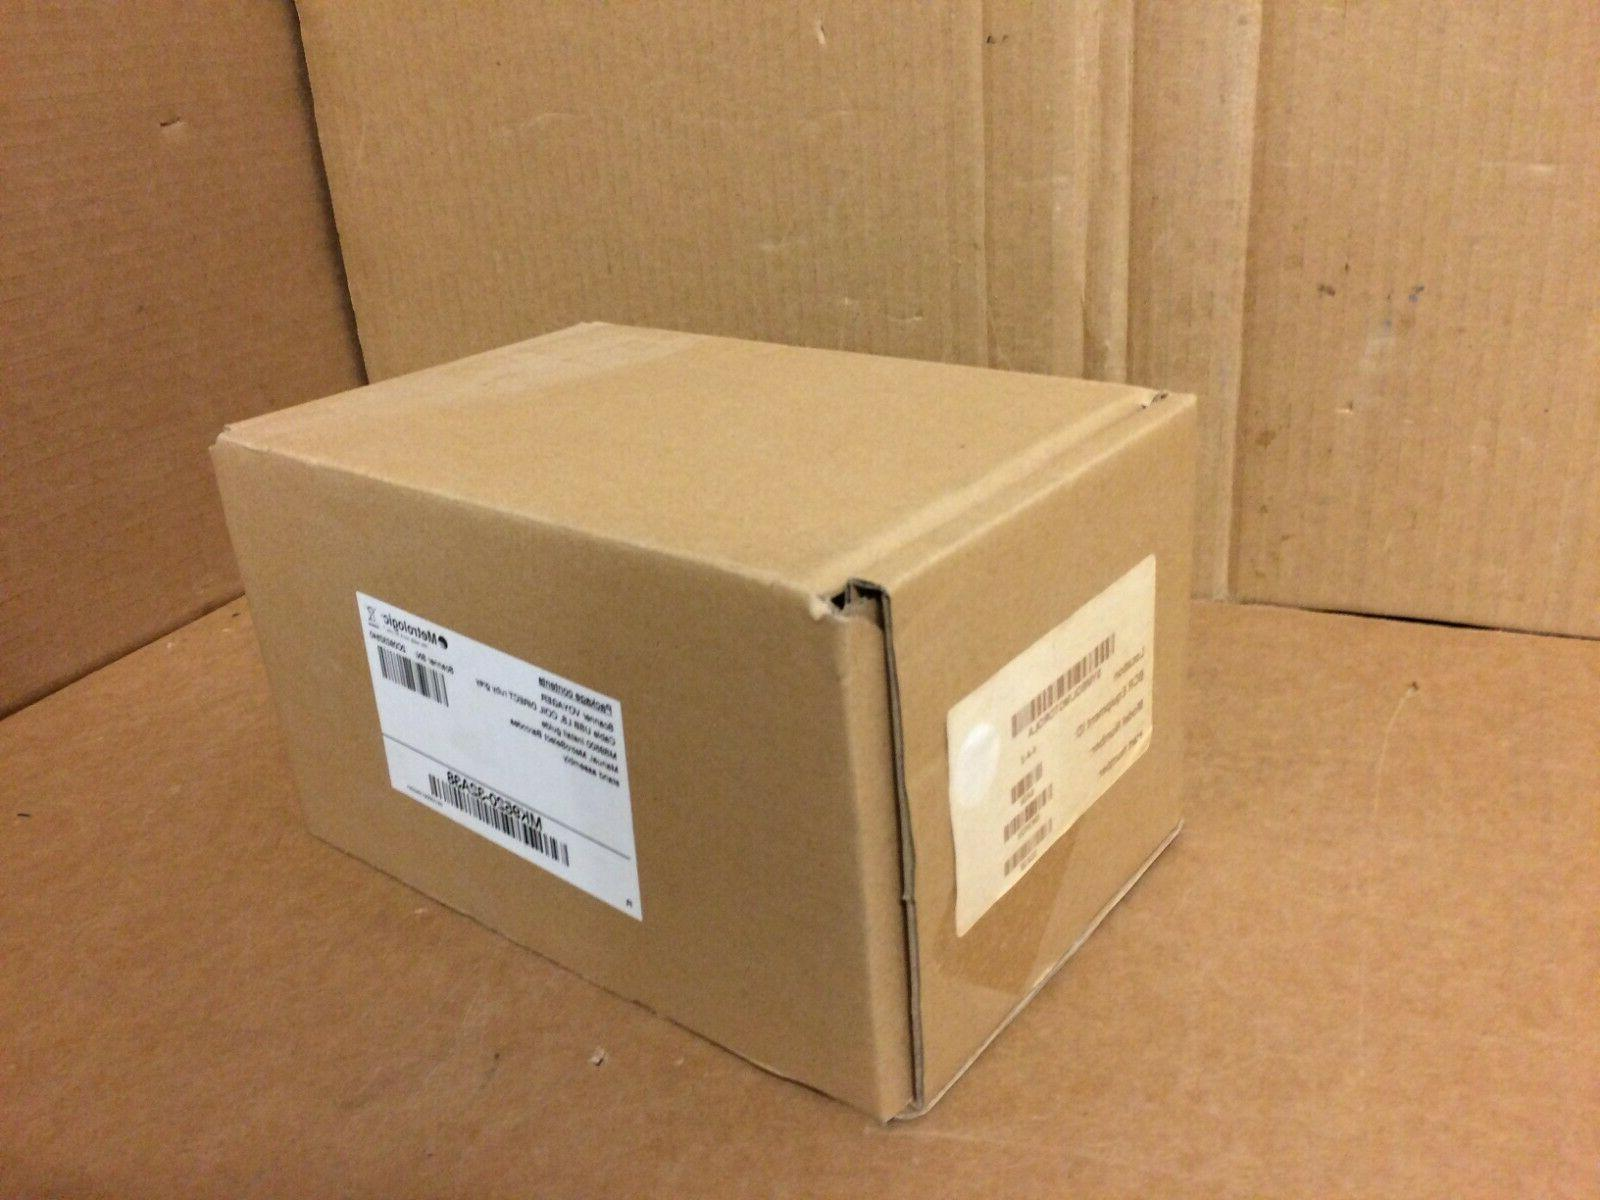 ms9500 voyager barcode scanner single line w